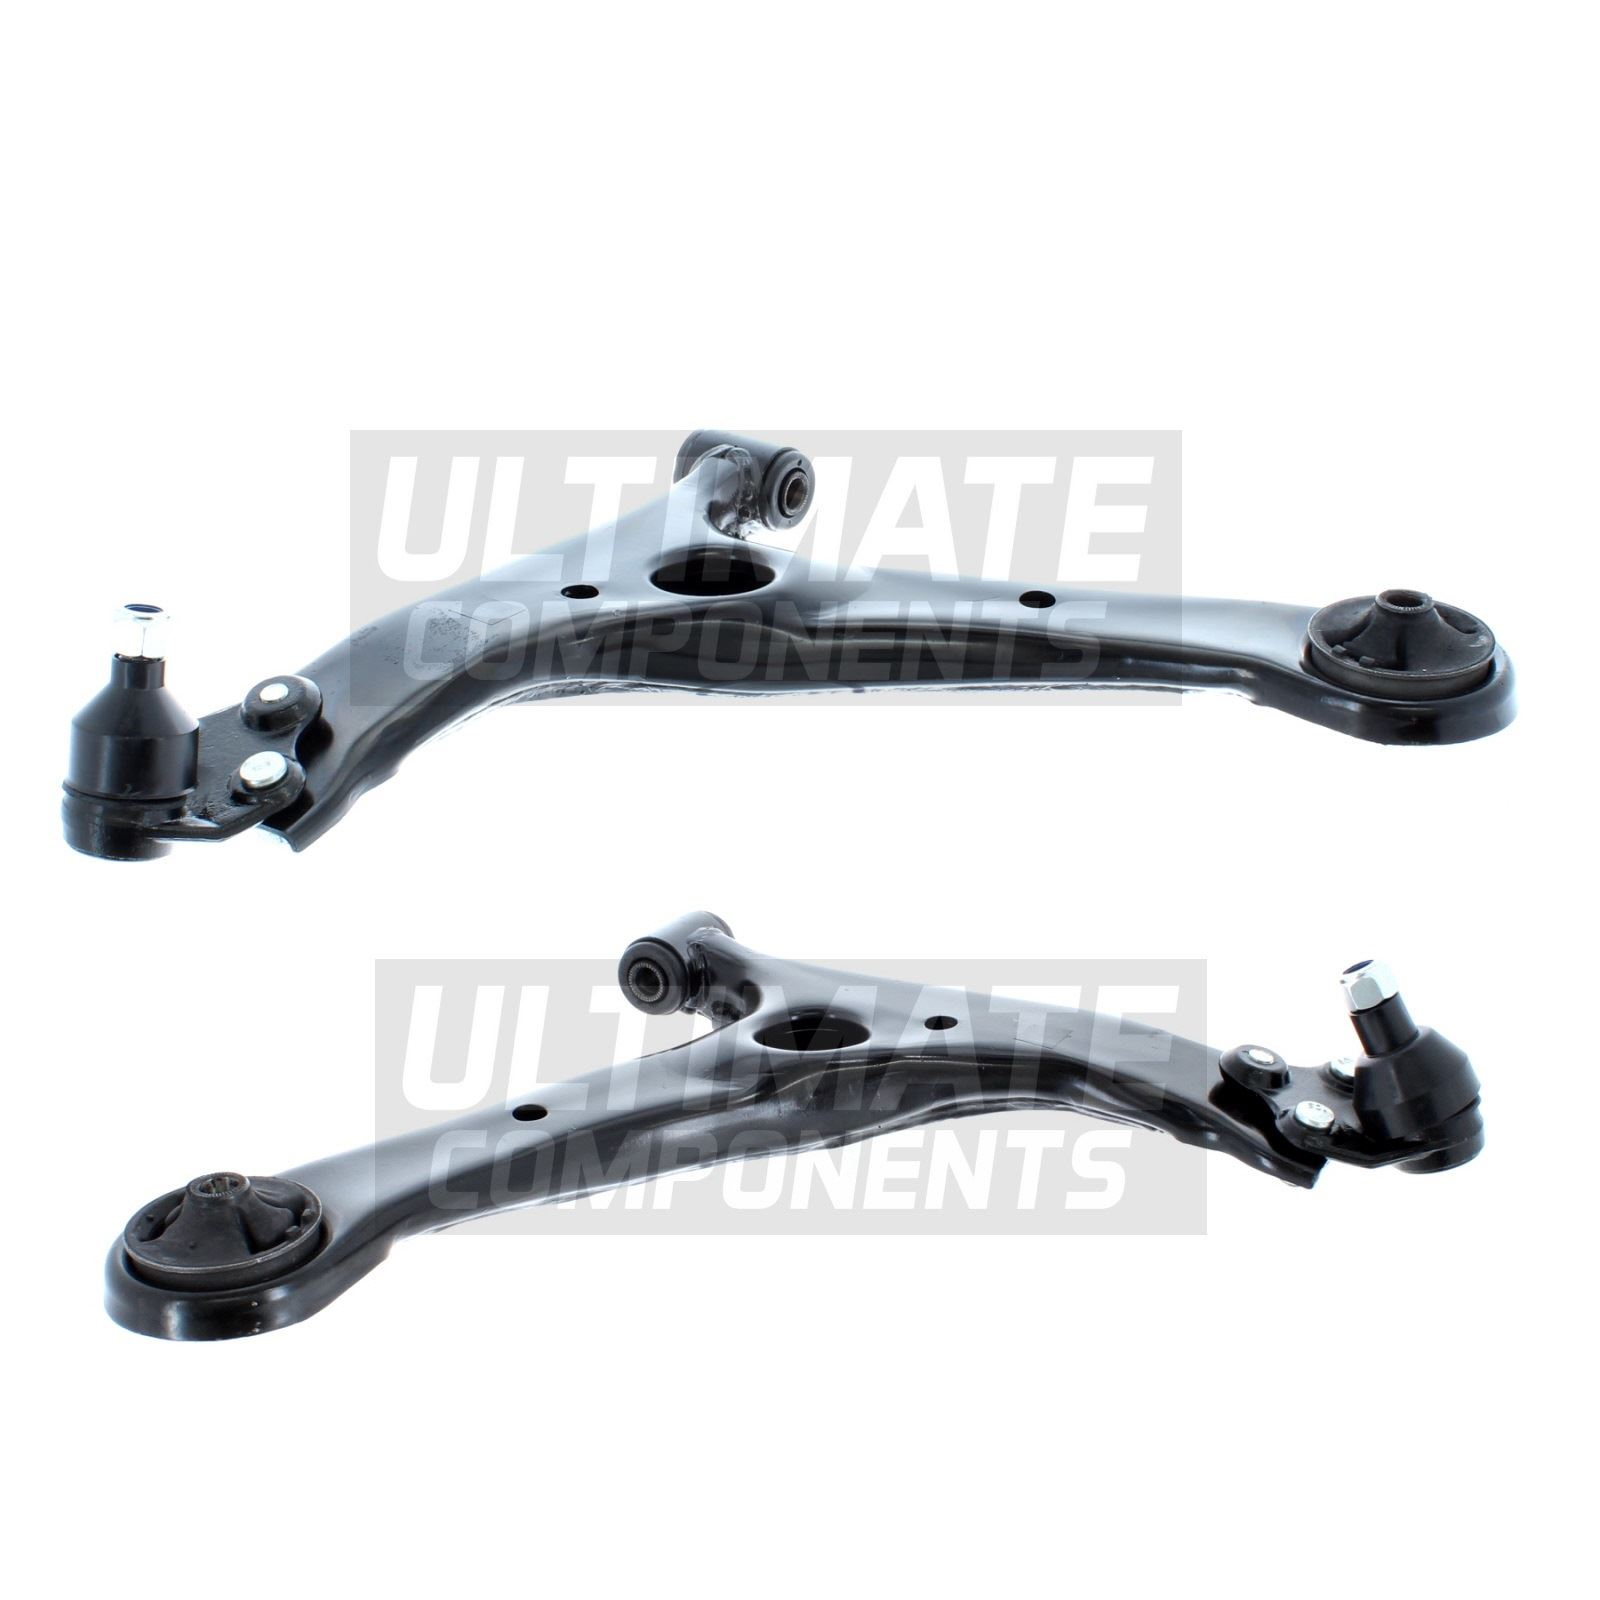 FORD STREETKA SPORTKA 2003-2009 FRONT LOWER WISHBONES SUSPENSION ARMS PAIR NEW